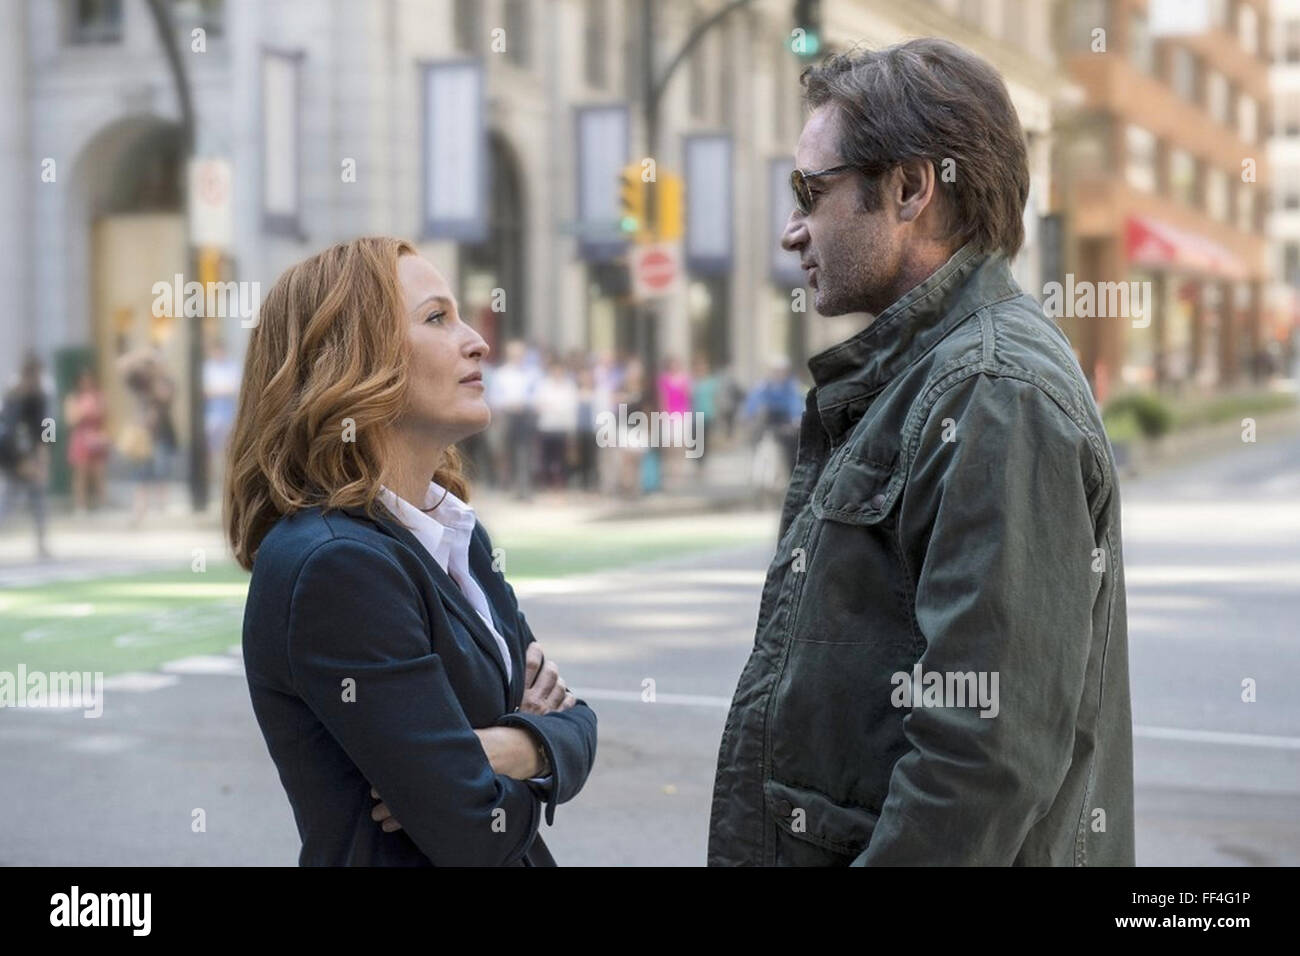 THE X-FILES  20th Century Fox TV series with Gillian Anderson and David Duchovny in the 1993  production - Stock Image